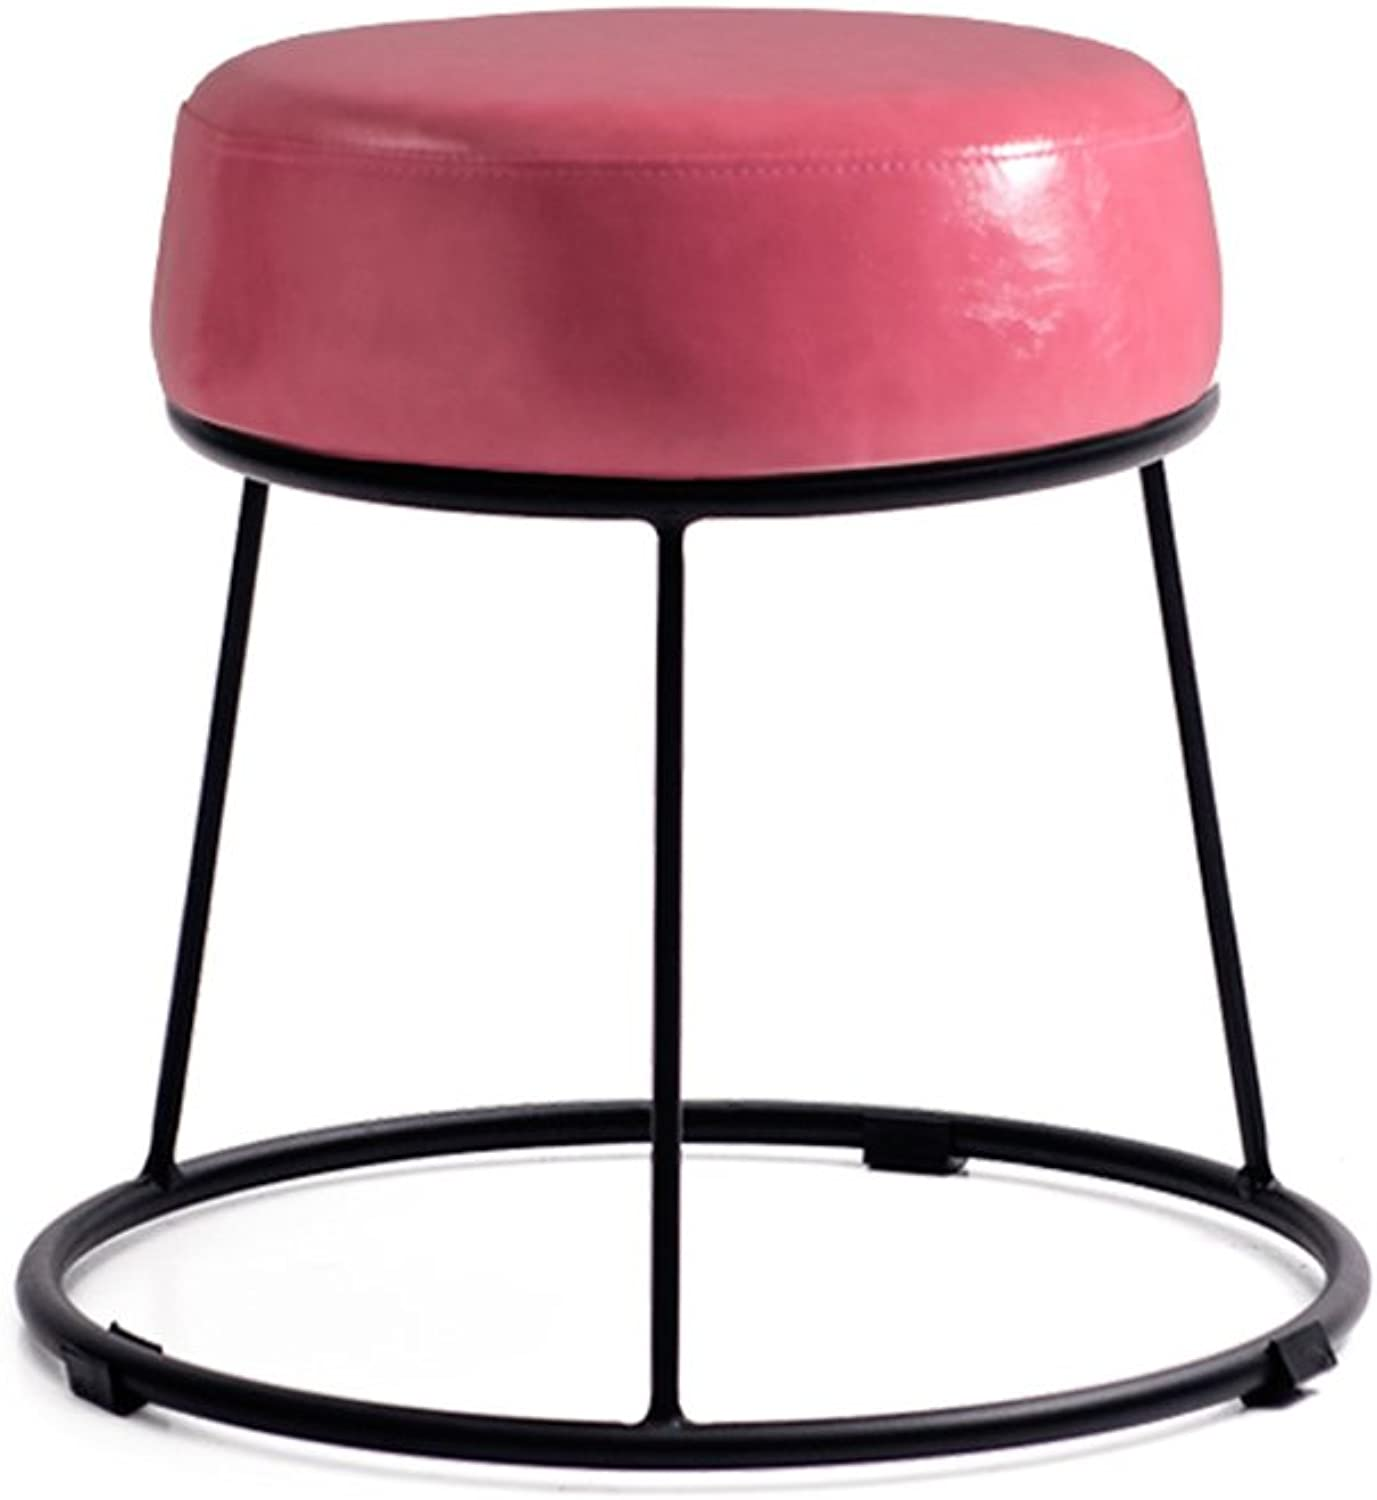 LHA Barstools Suitable for shoes Benches, Household Stools, Coffee Table Stools, Decorative Stools, Multicolor Bar Furniture (color   F)